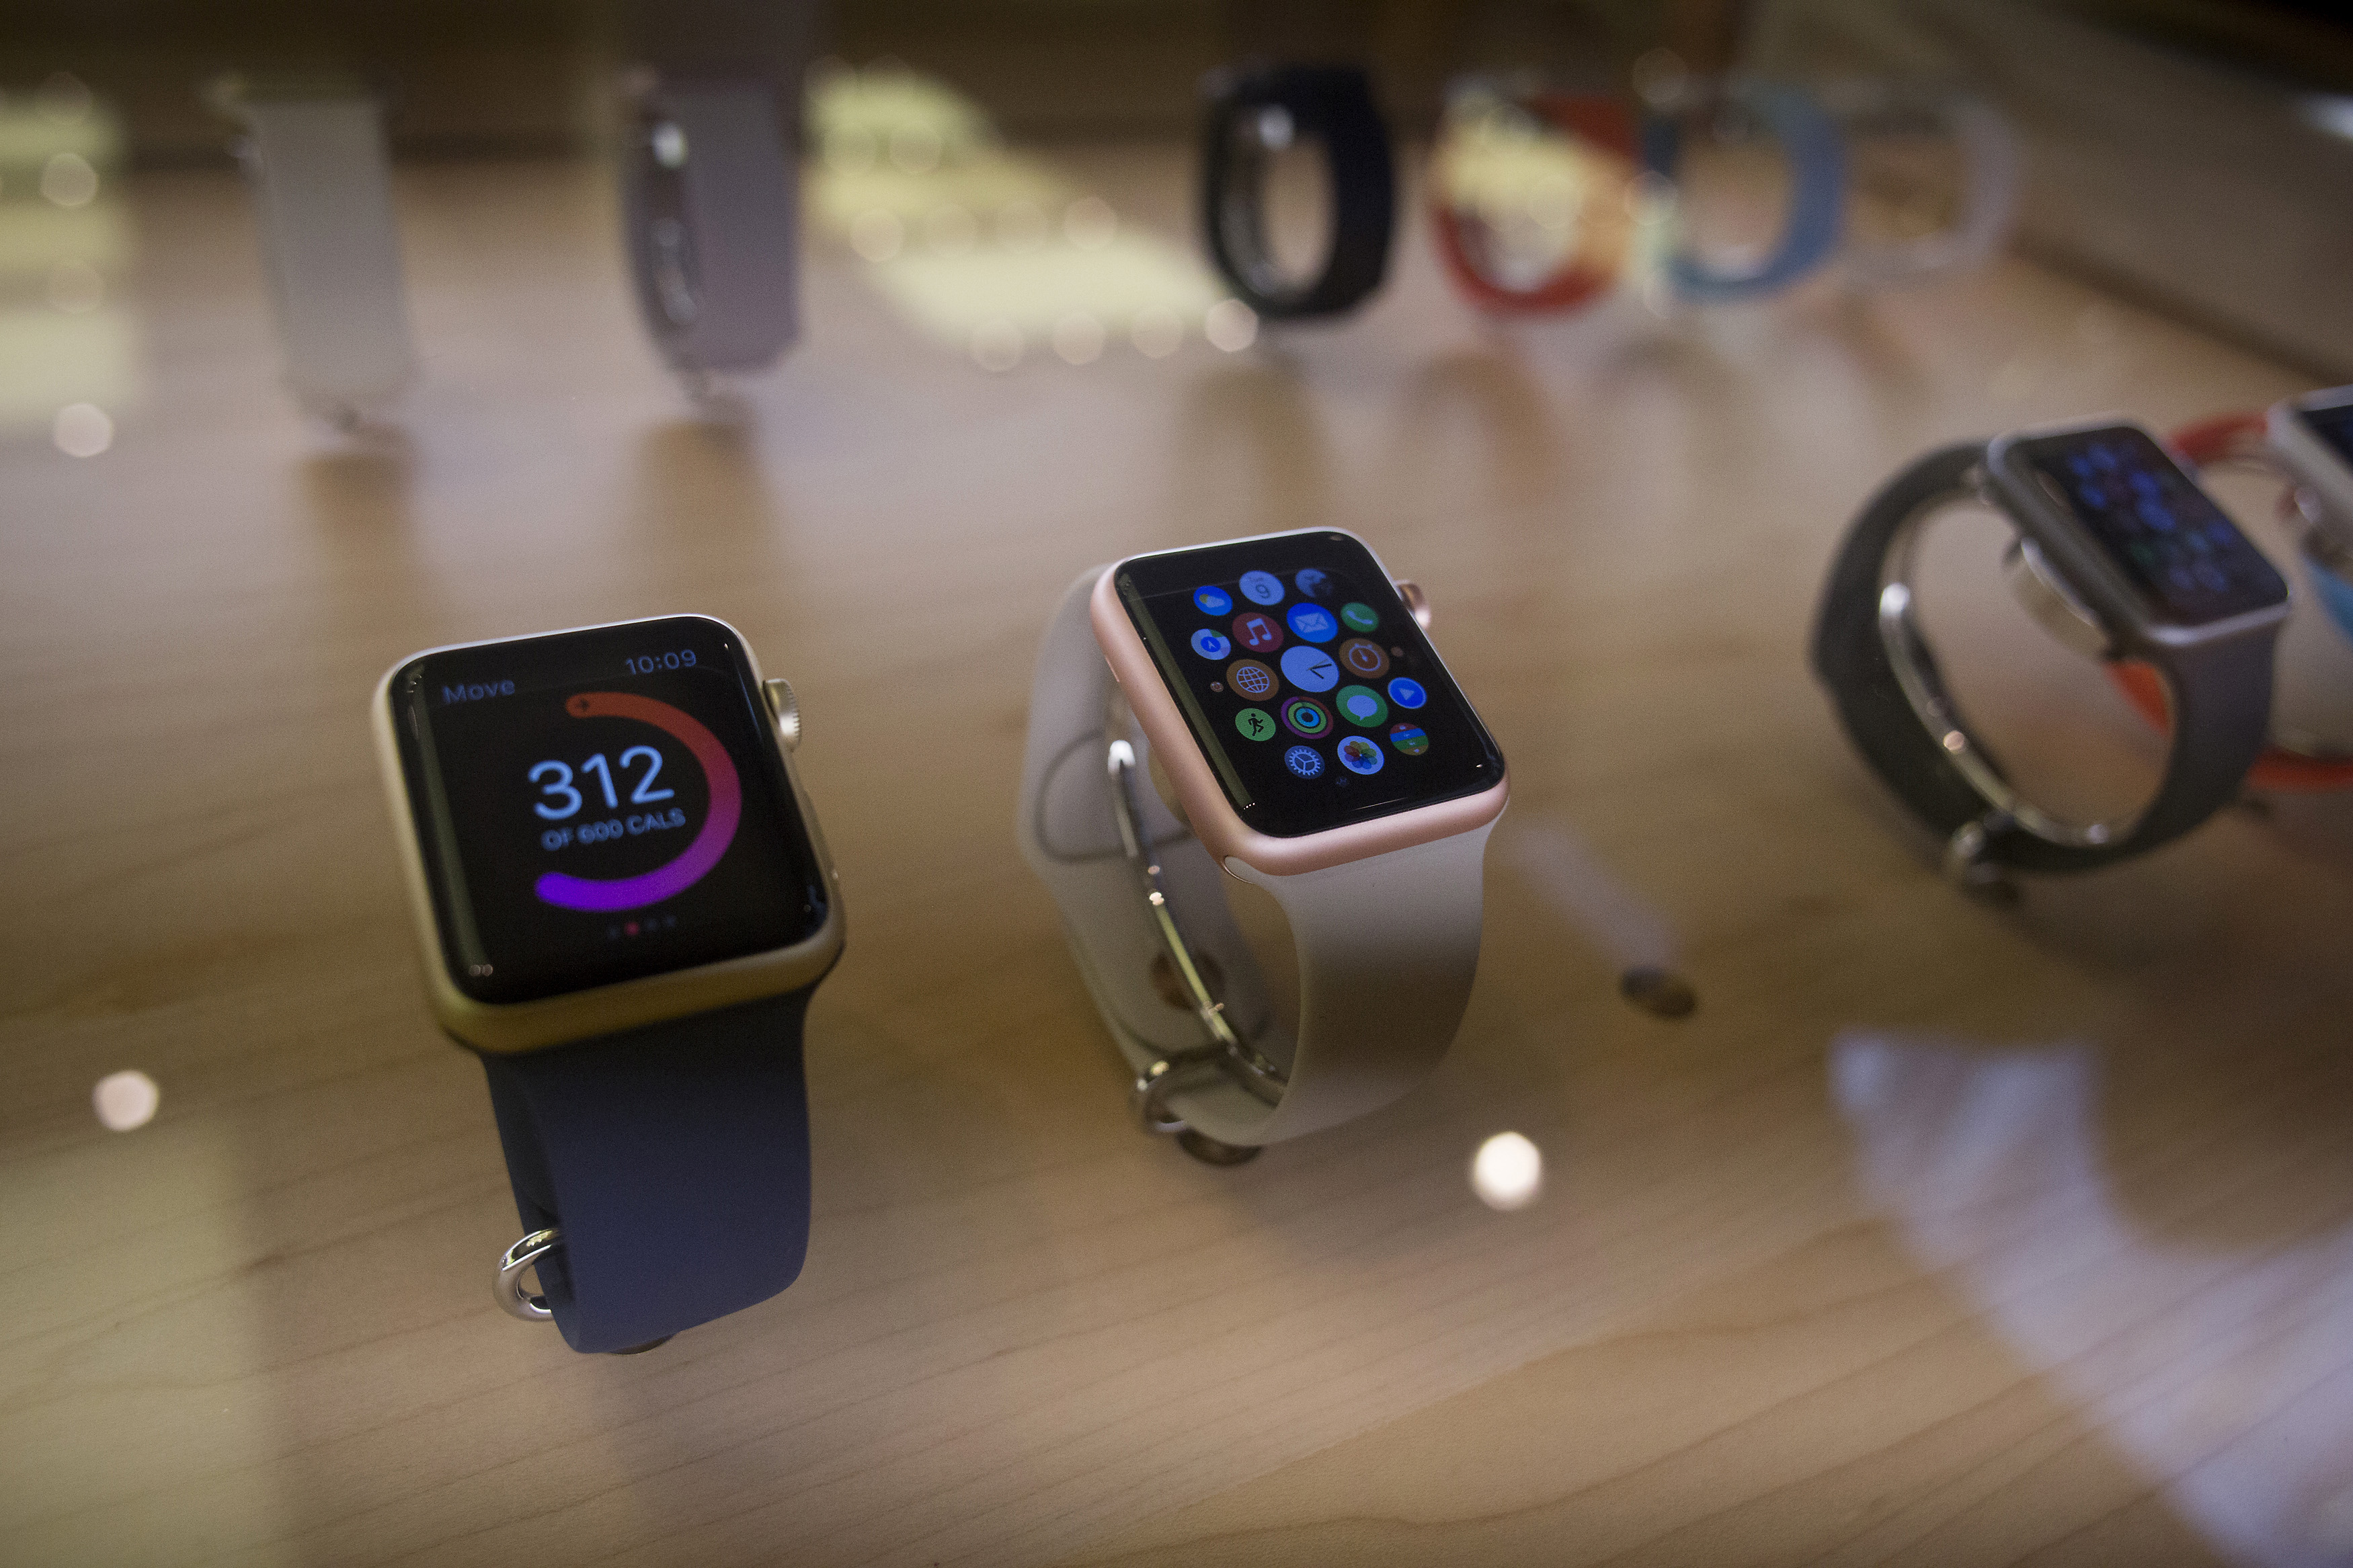 Apple Watch Sport devices in rose gold and gold finishes are displayed at an Apple Inc. store in New York, U.S., on Thursday, Sept. 10, 2015.